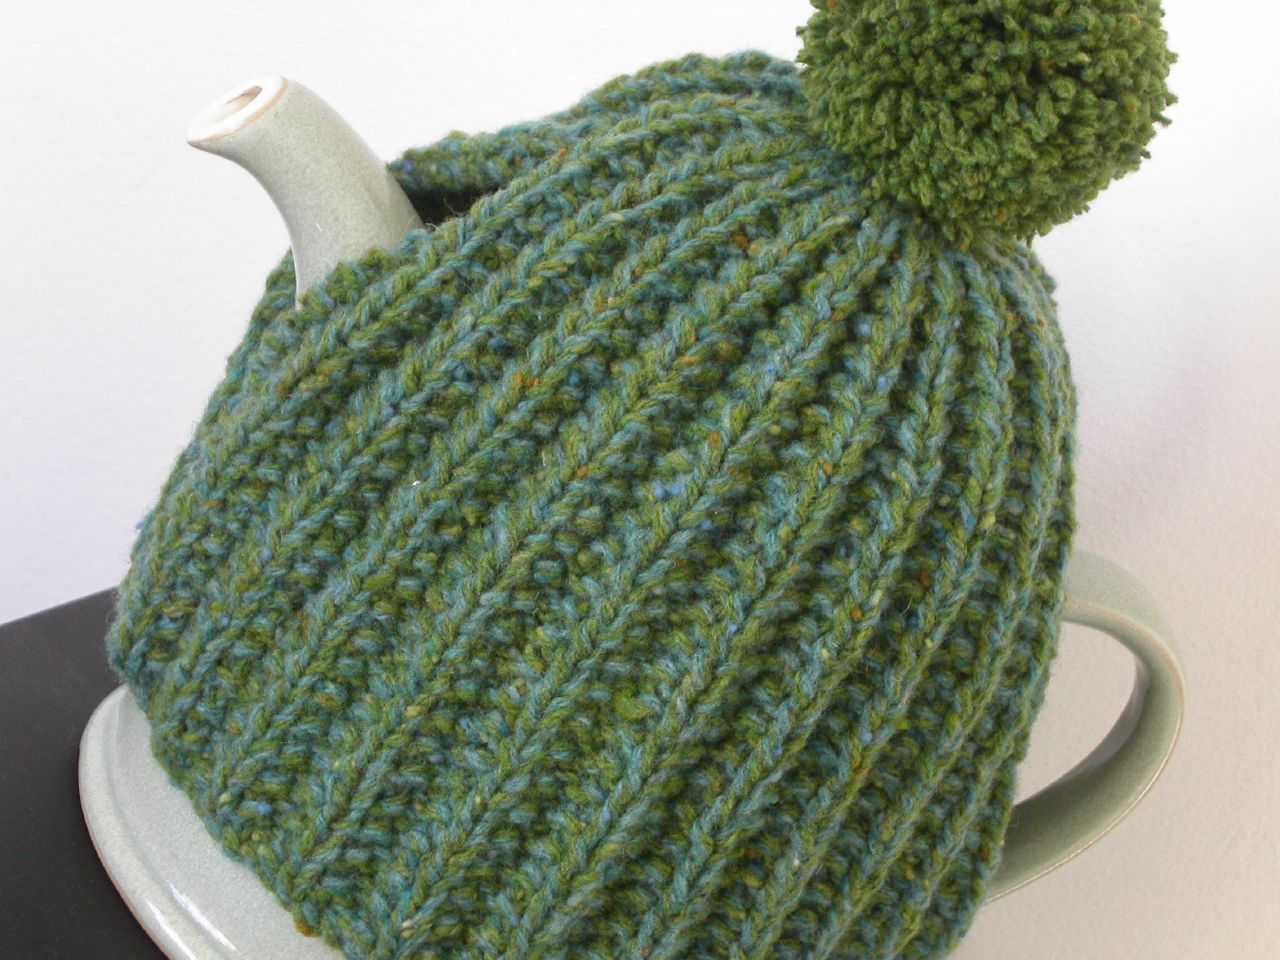 fb7fd0451 I had a request some time ago to make a simple knitted tea cosy and ...